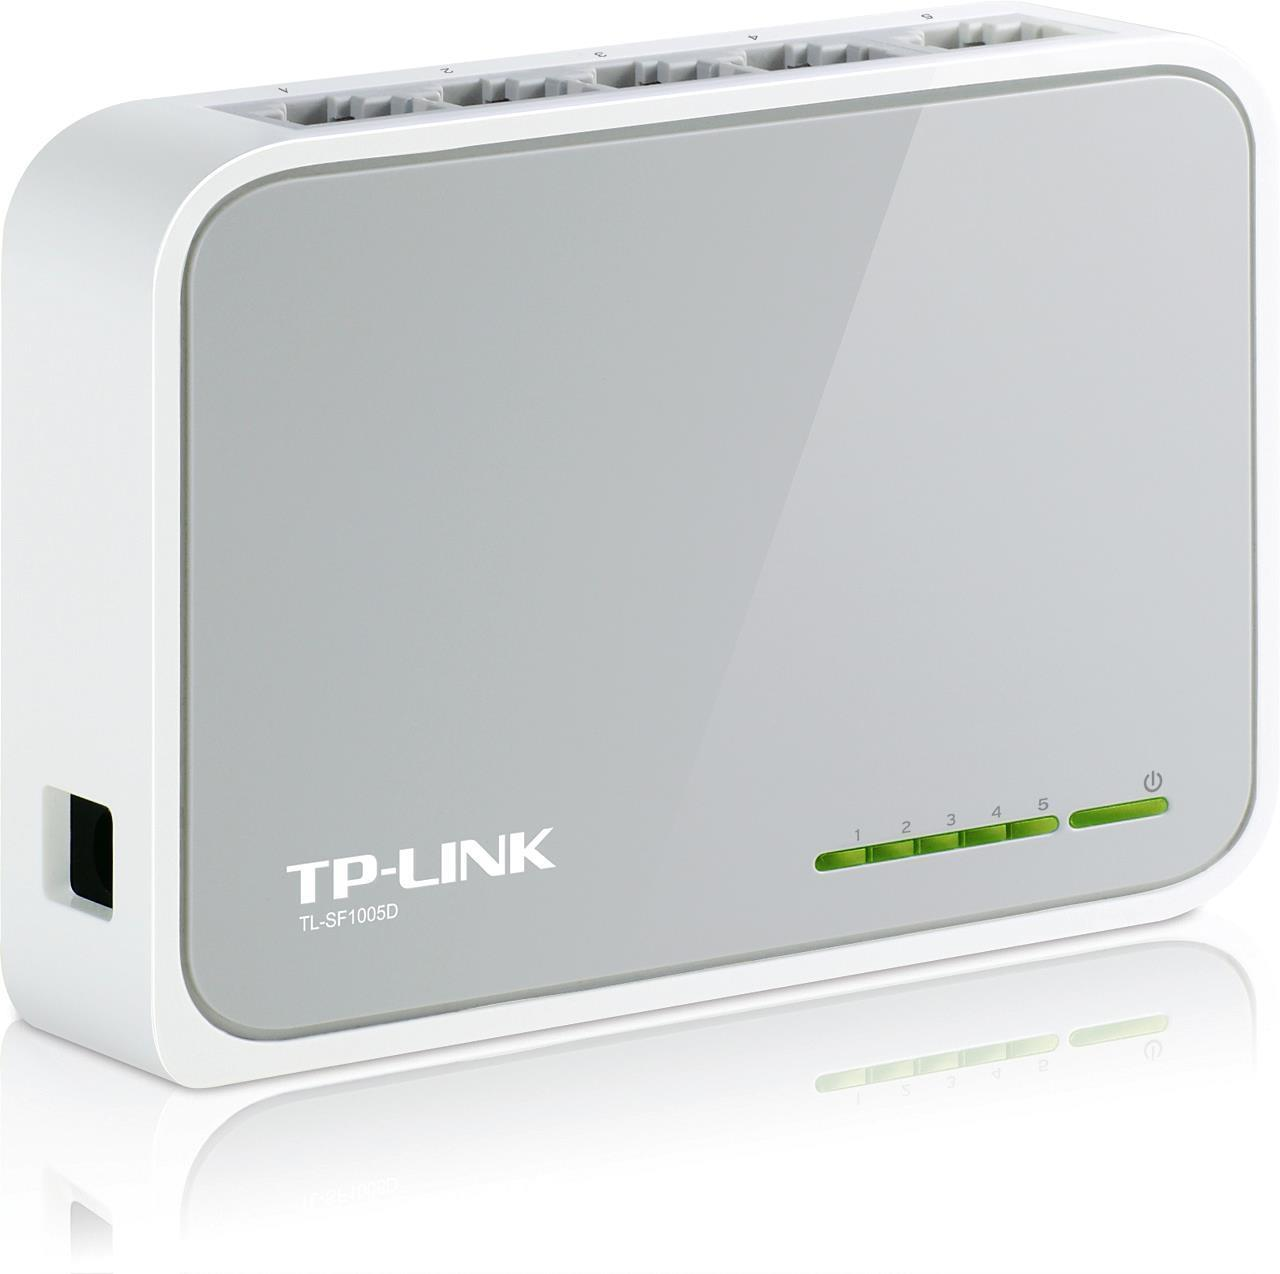 TP-Link 5-port Unmanaged 10/100M Desktop Switch (5 10/100M RJ45 ports)